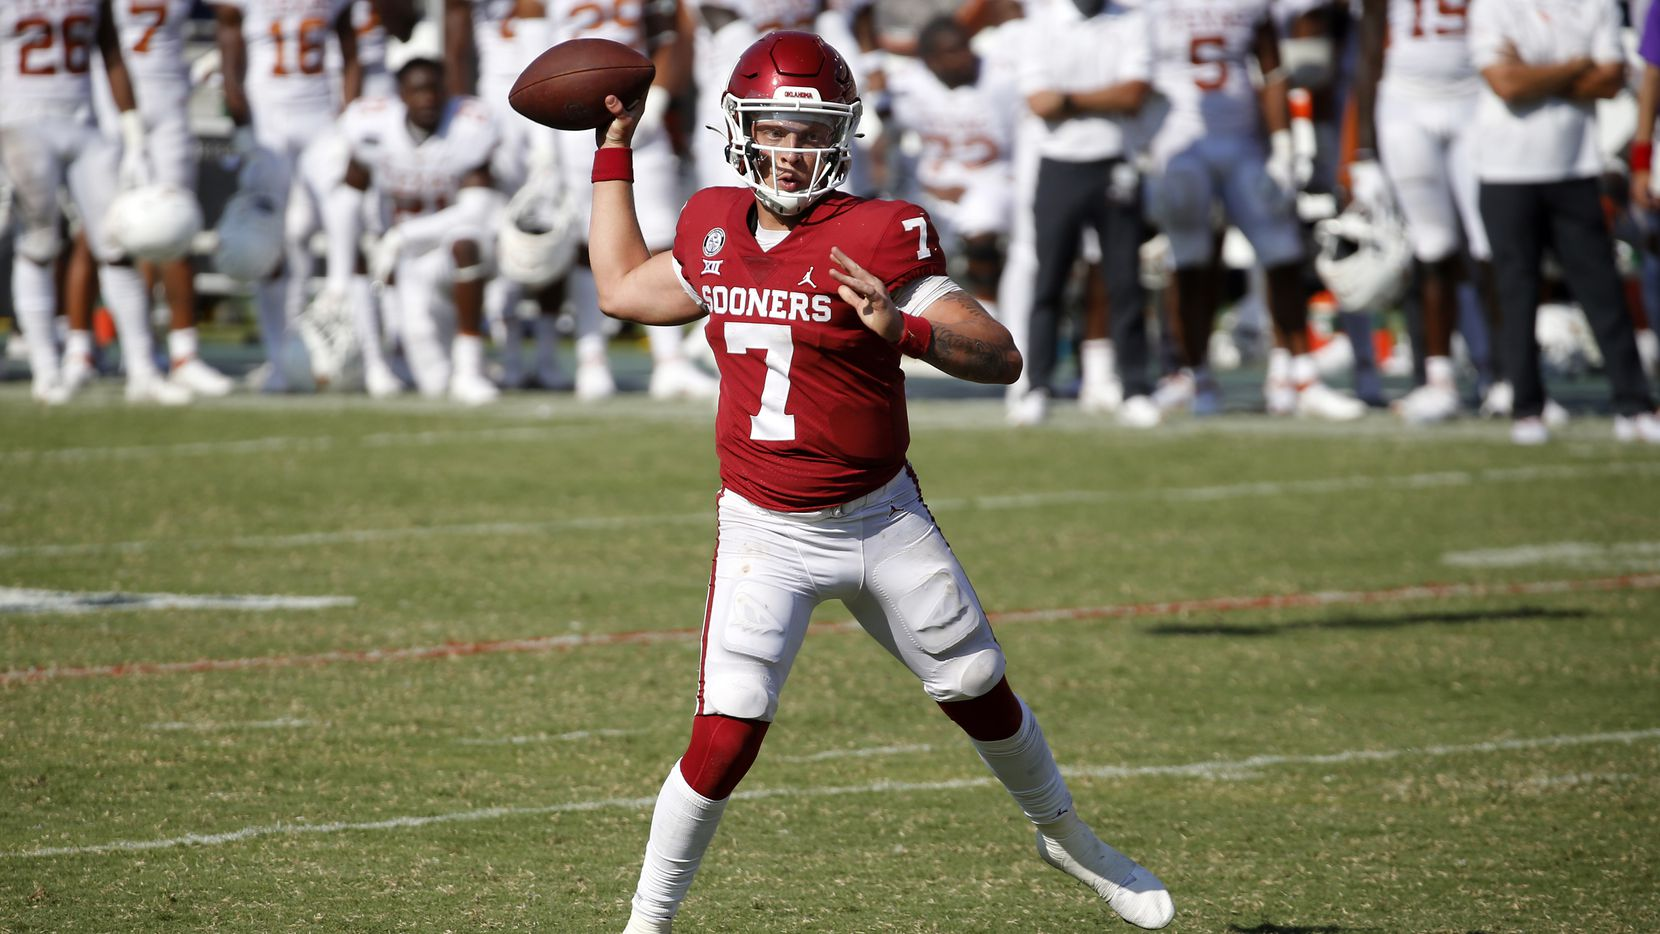 Oklahoma Sooners quarterback Spencer Rattler (7) throws a two-point conversion following the winning touchdown against the Texas Longhorns in the Red River Rivalry at the Cotton Bowl in Dallas, Saturday, October 10, 2020. Oklahoma won in quadruple overtime, 53-45.